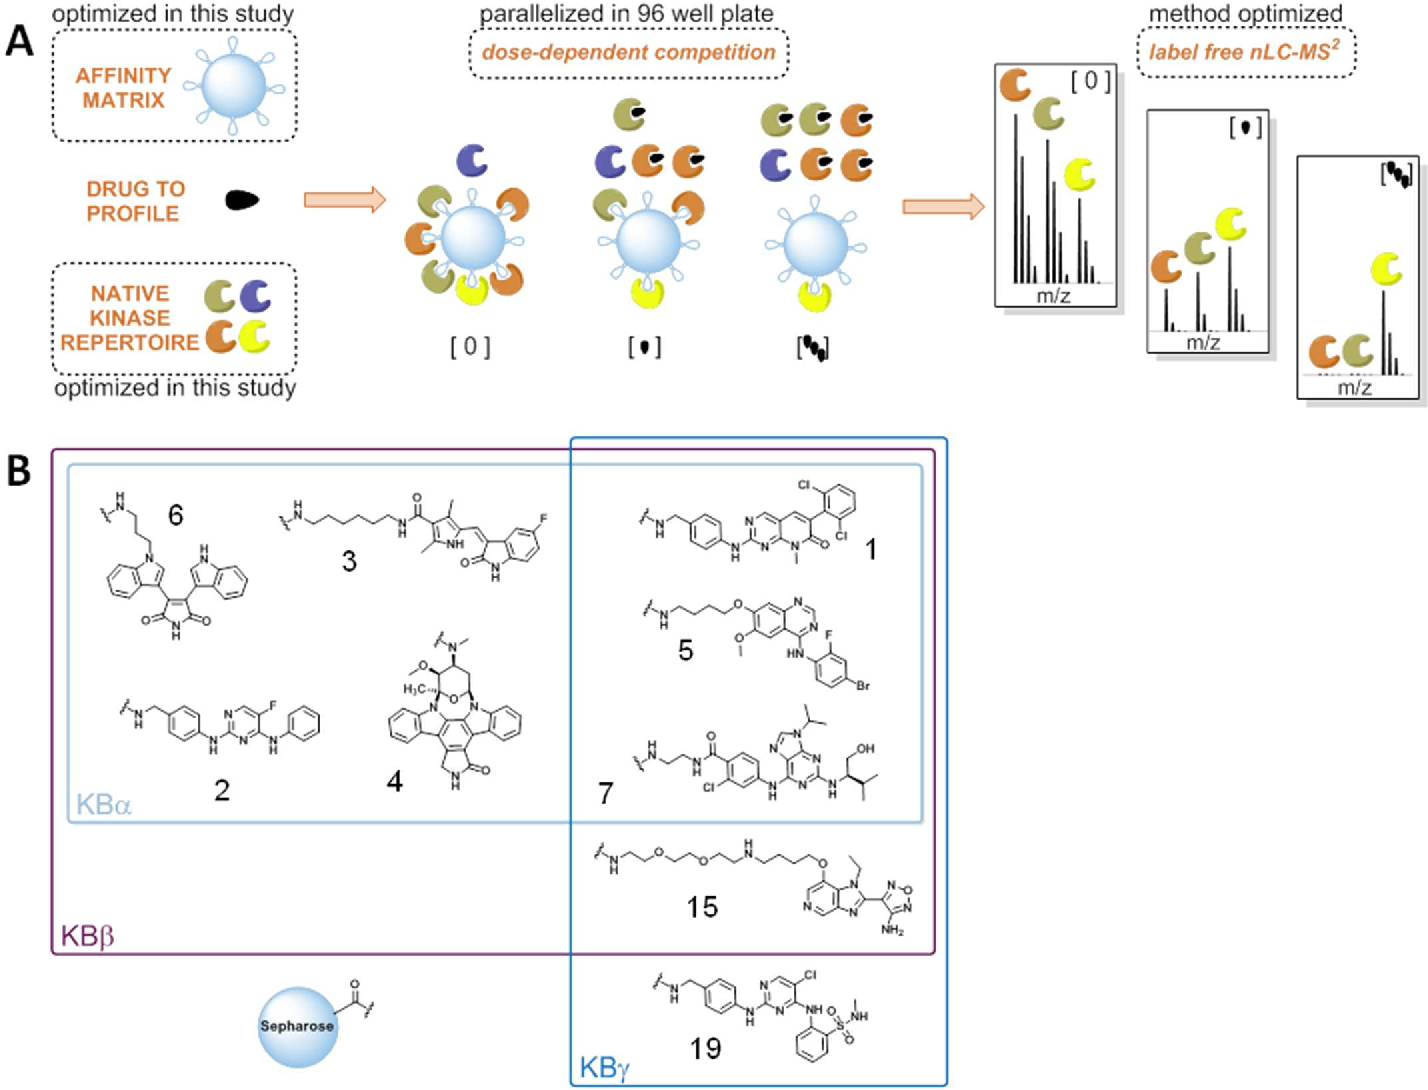 Figure 1 from Optimized chemical proteomics assay for kinase